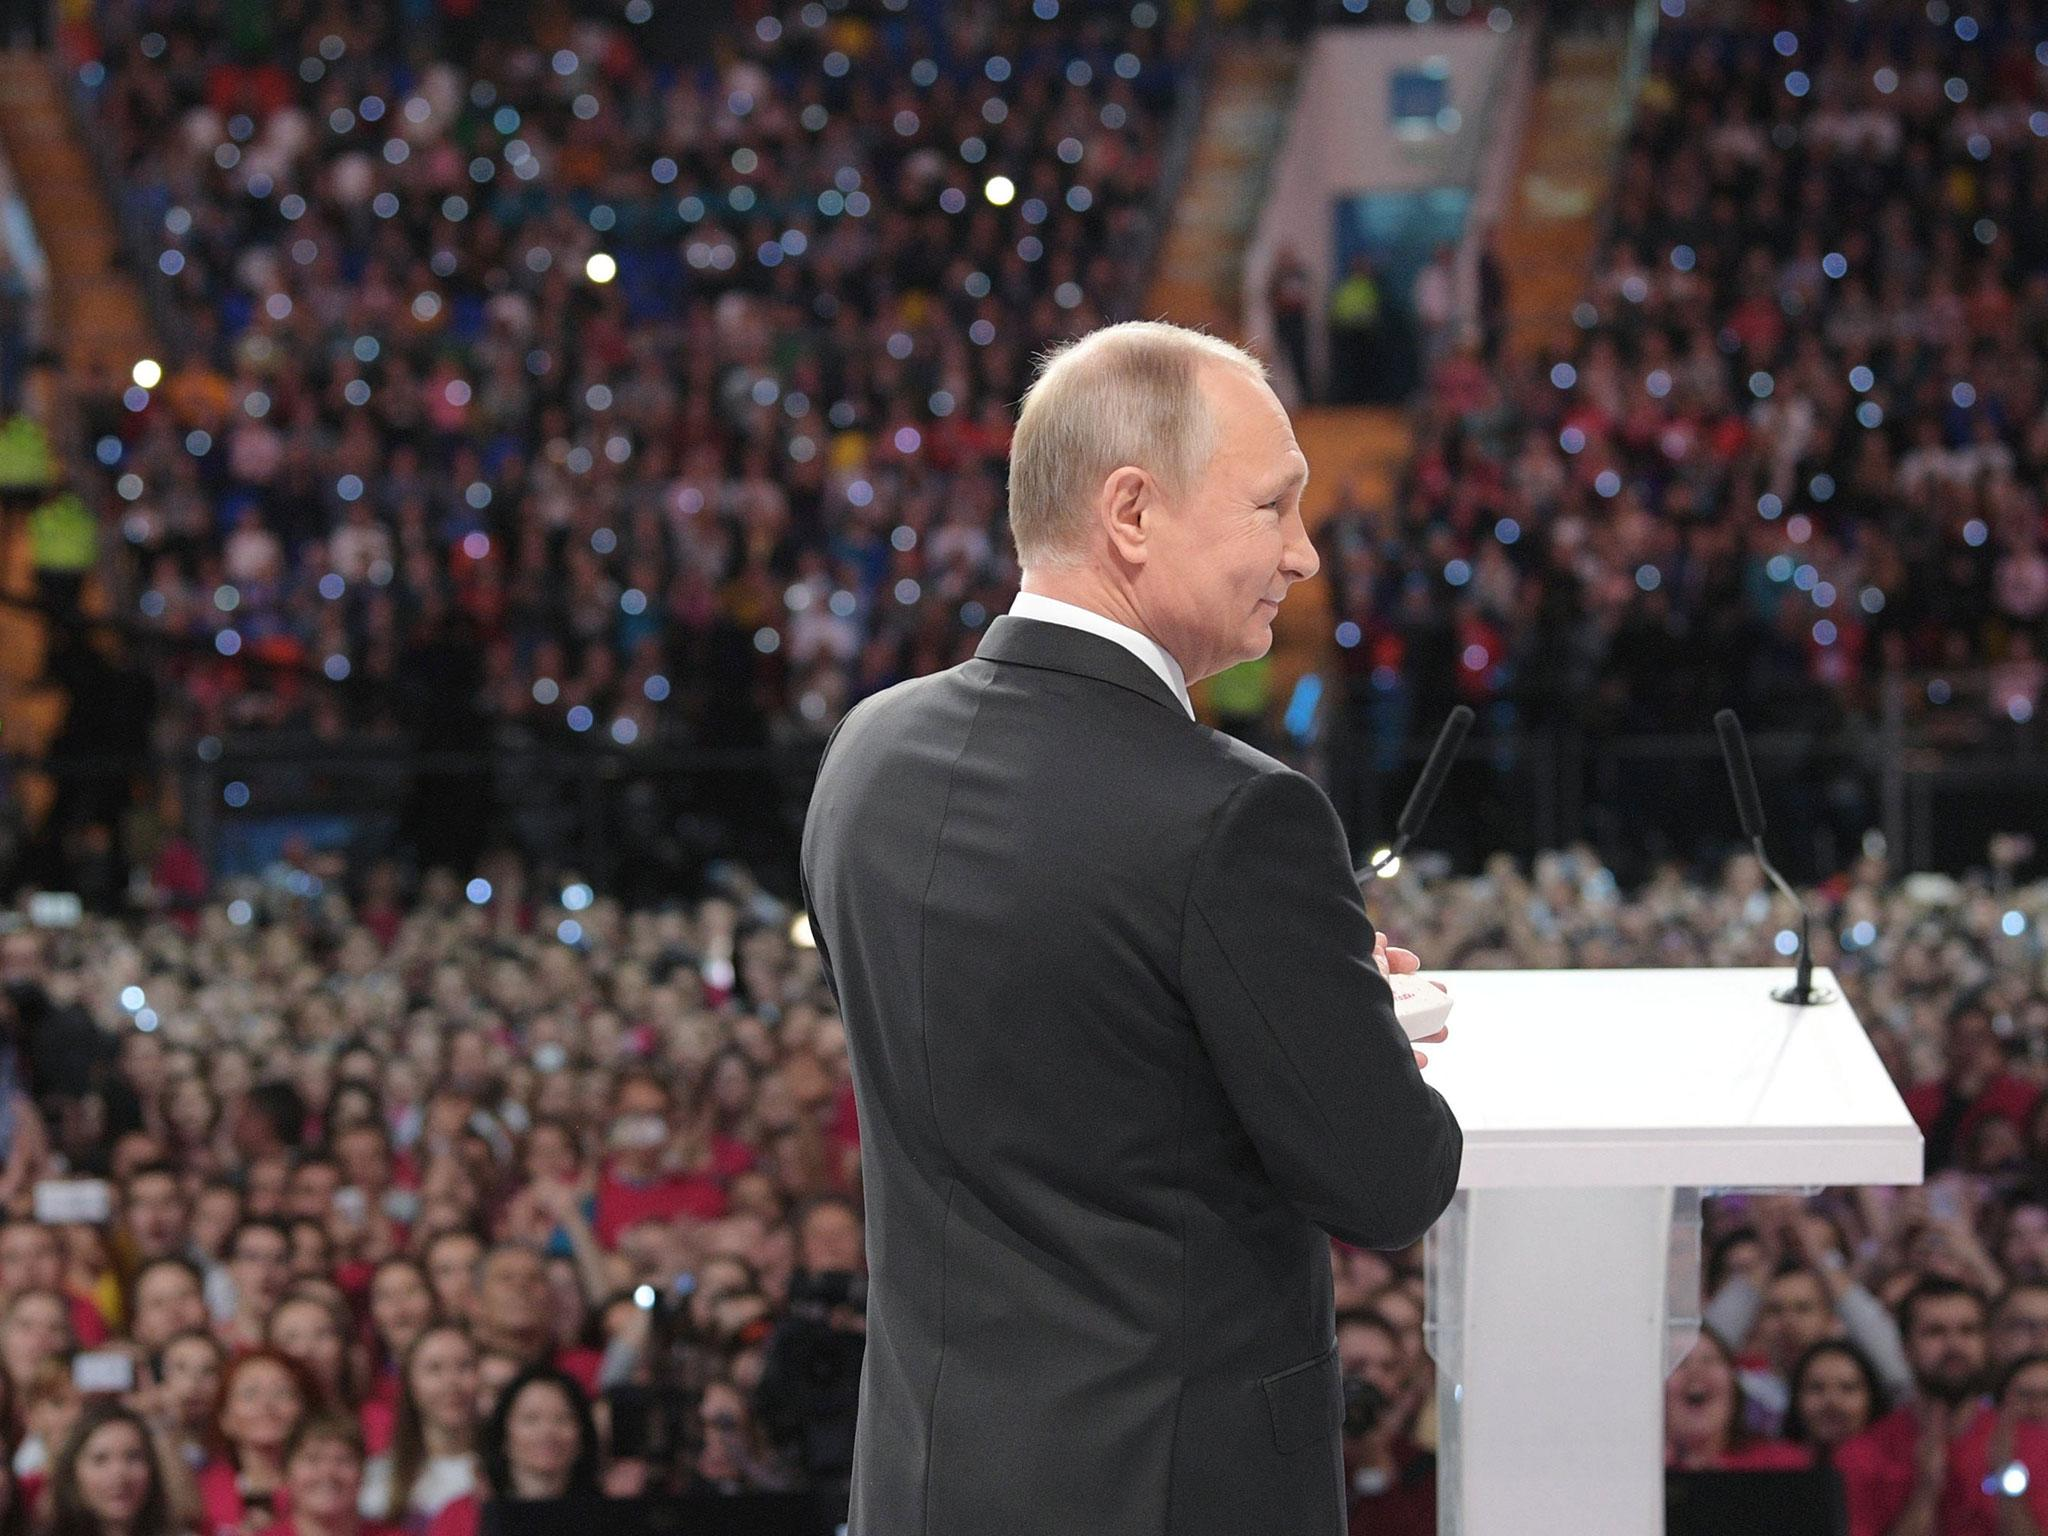 Vladimir Putin gives strongest hint yet that he will run for Russian President again in 2018